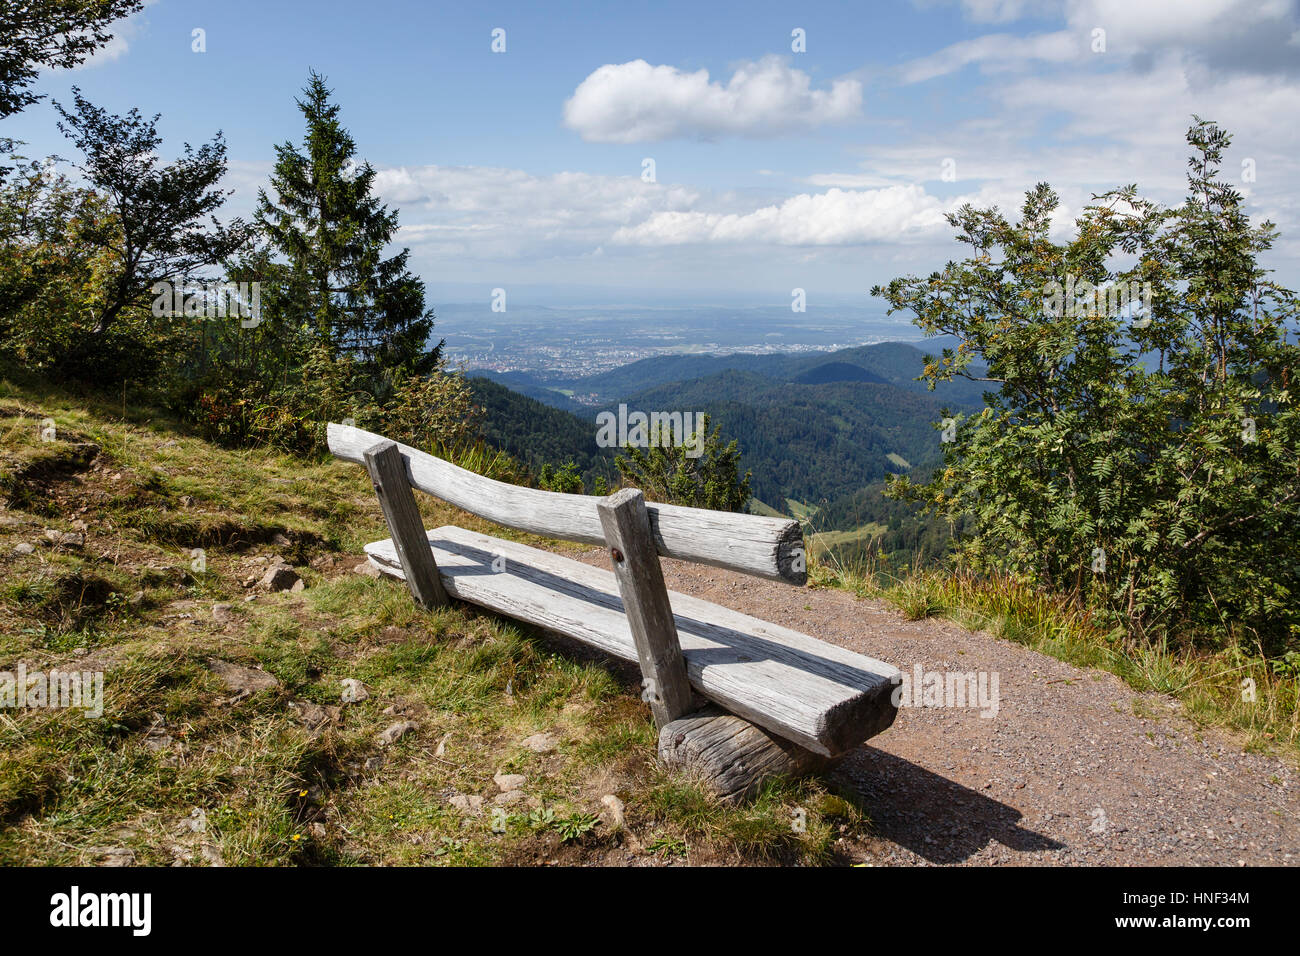 Wooden bench at a viewpoint near the summit of Schauinsland, near Freiburg, Black Forest, Germany - Stock Image